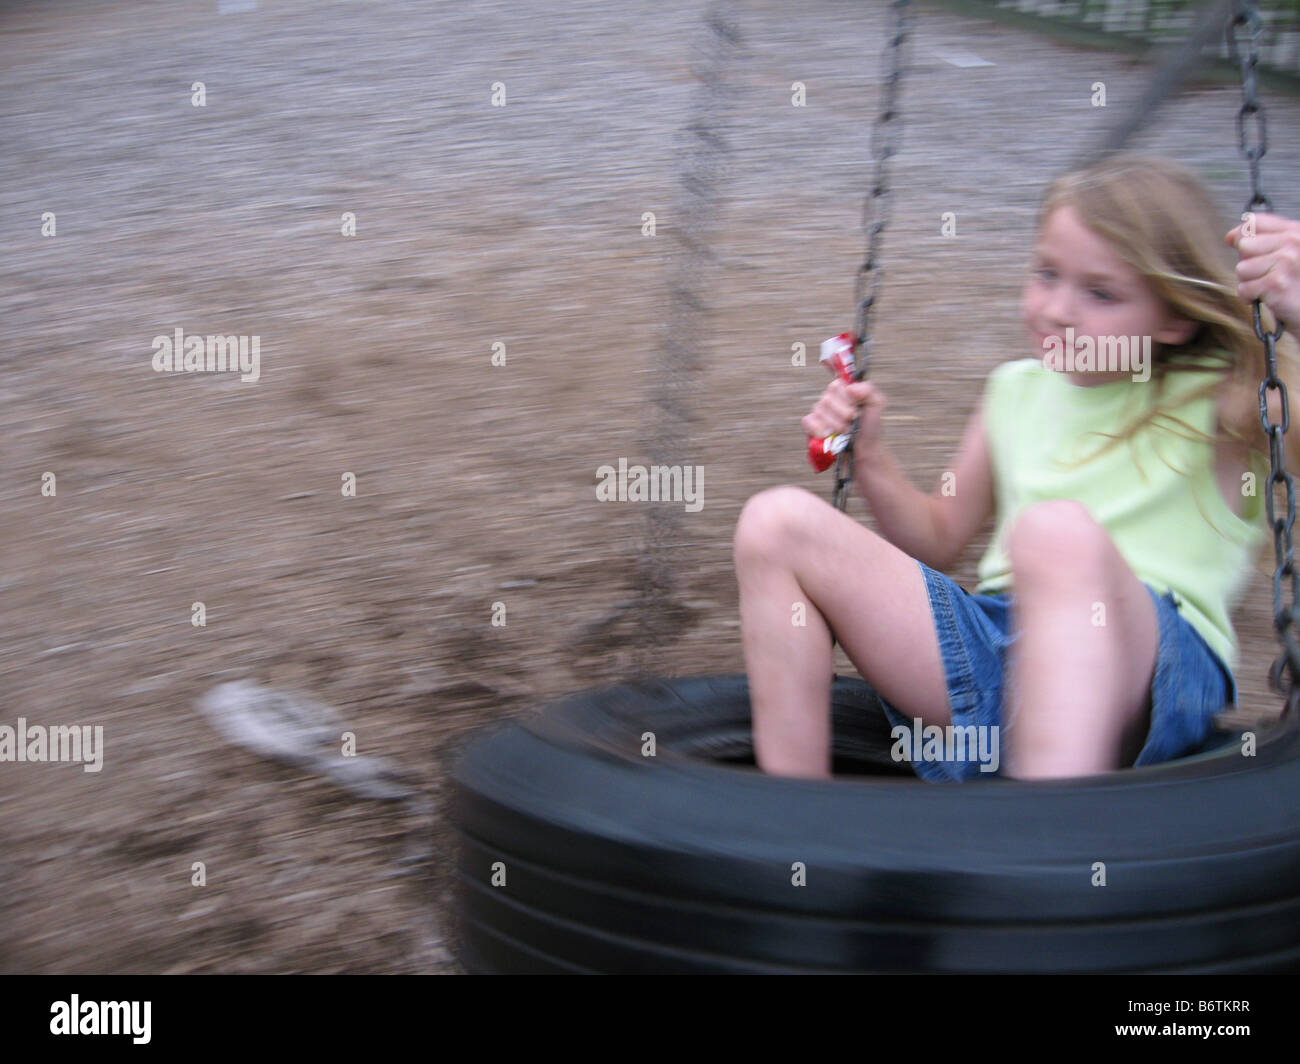 Little girl whirling around in a tire swing on a playground - Stock Image